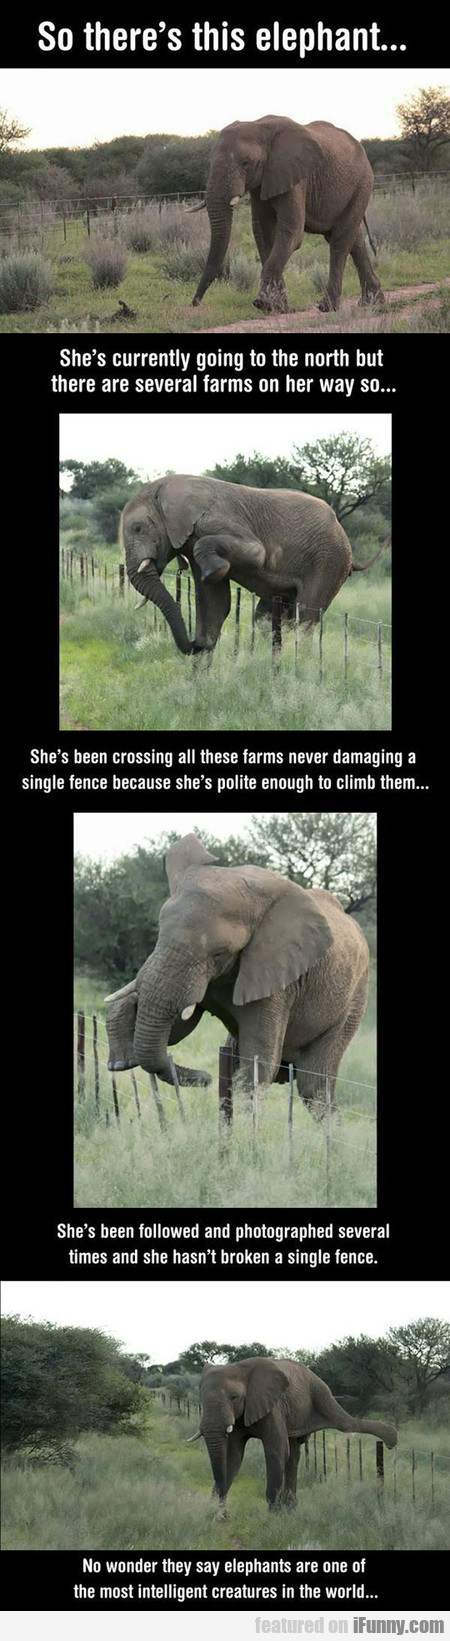 So There's This Elephant...